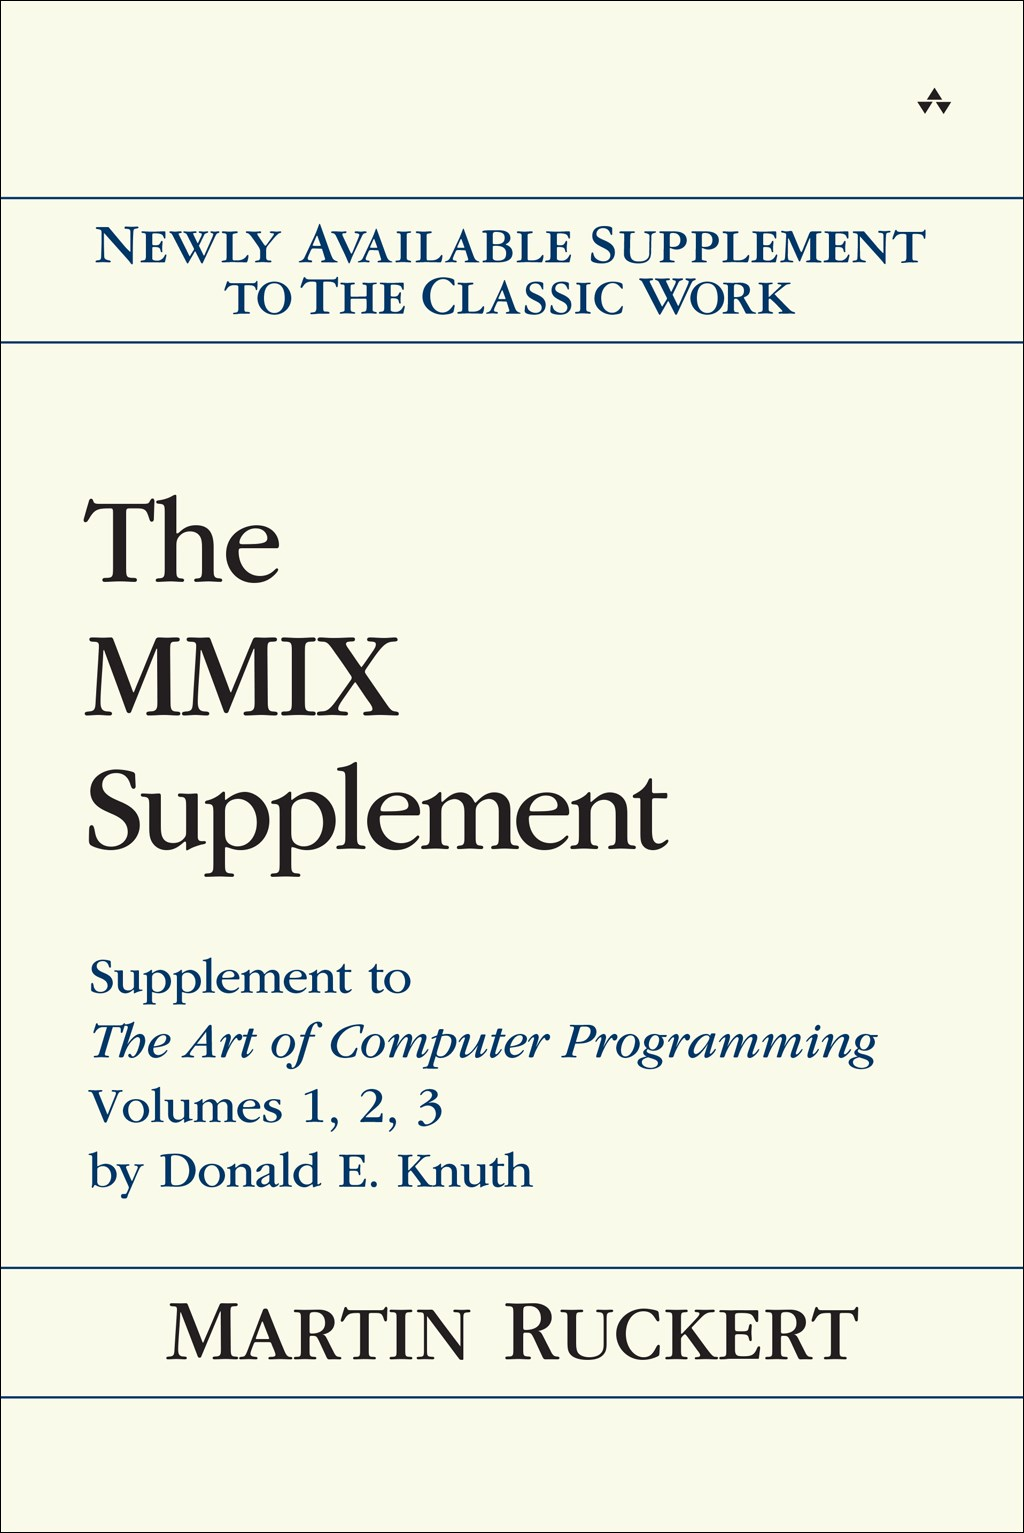 MMIX Supplement, The: Supplement to The Art of Computer Programming Volumes 1, 2, 3 by Donald E. Knuth